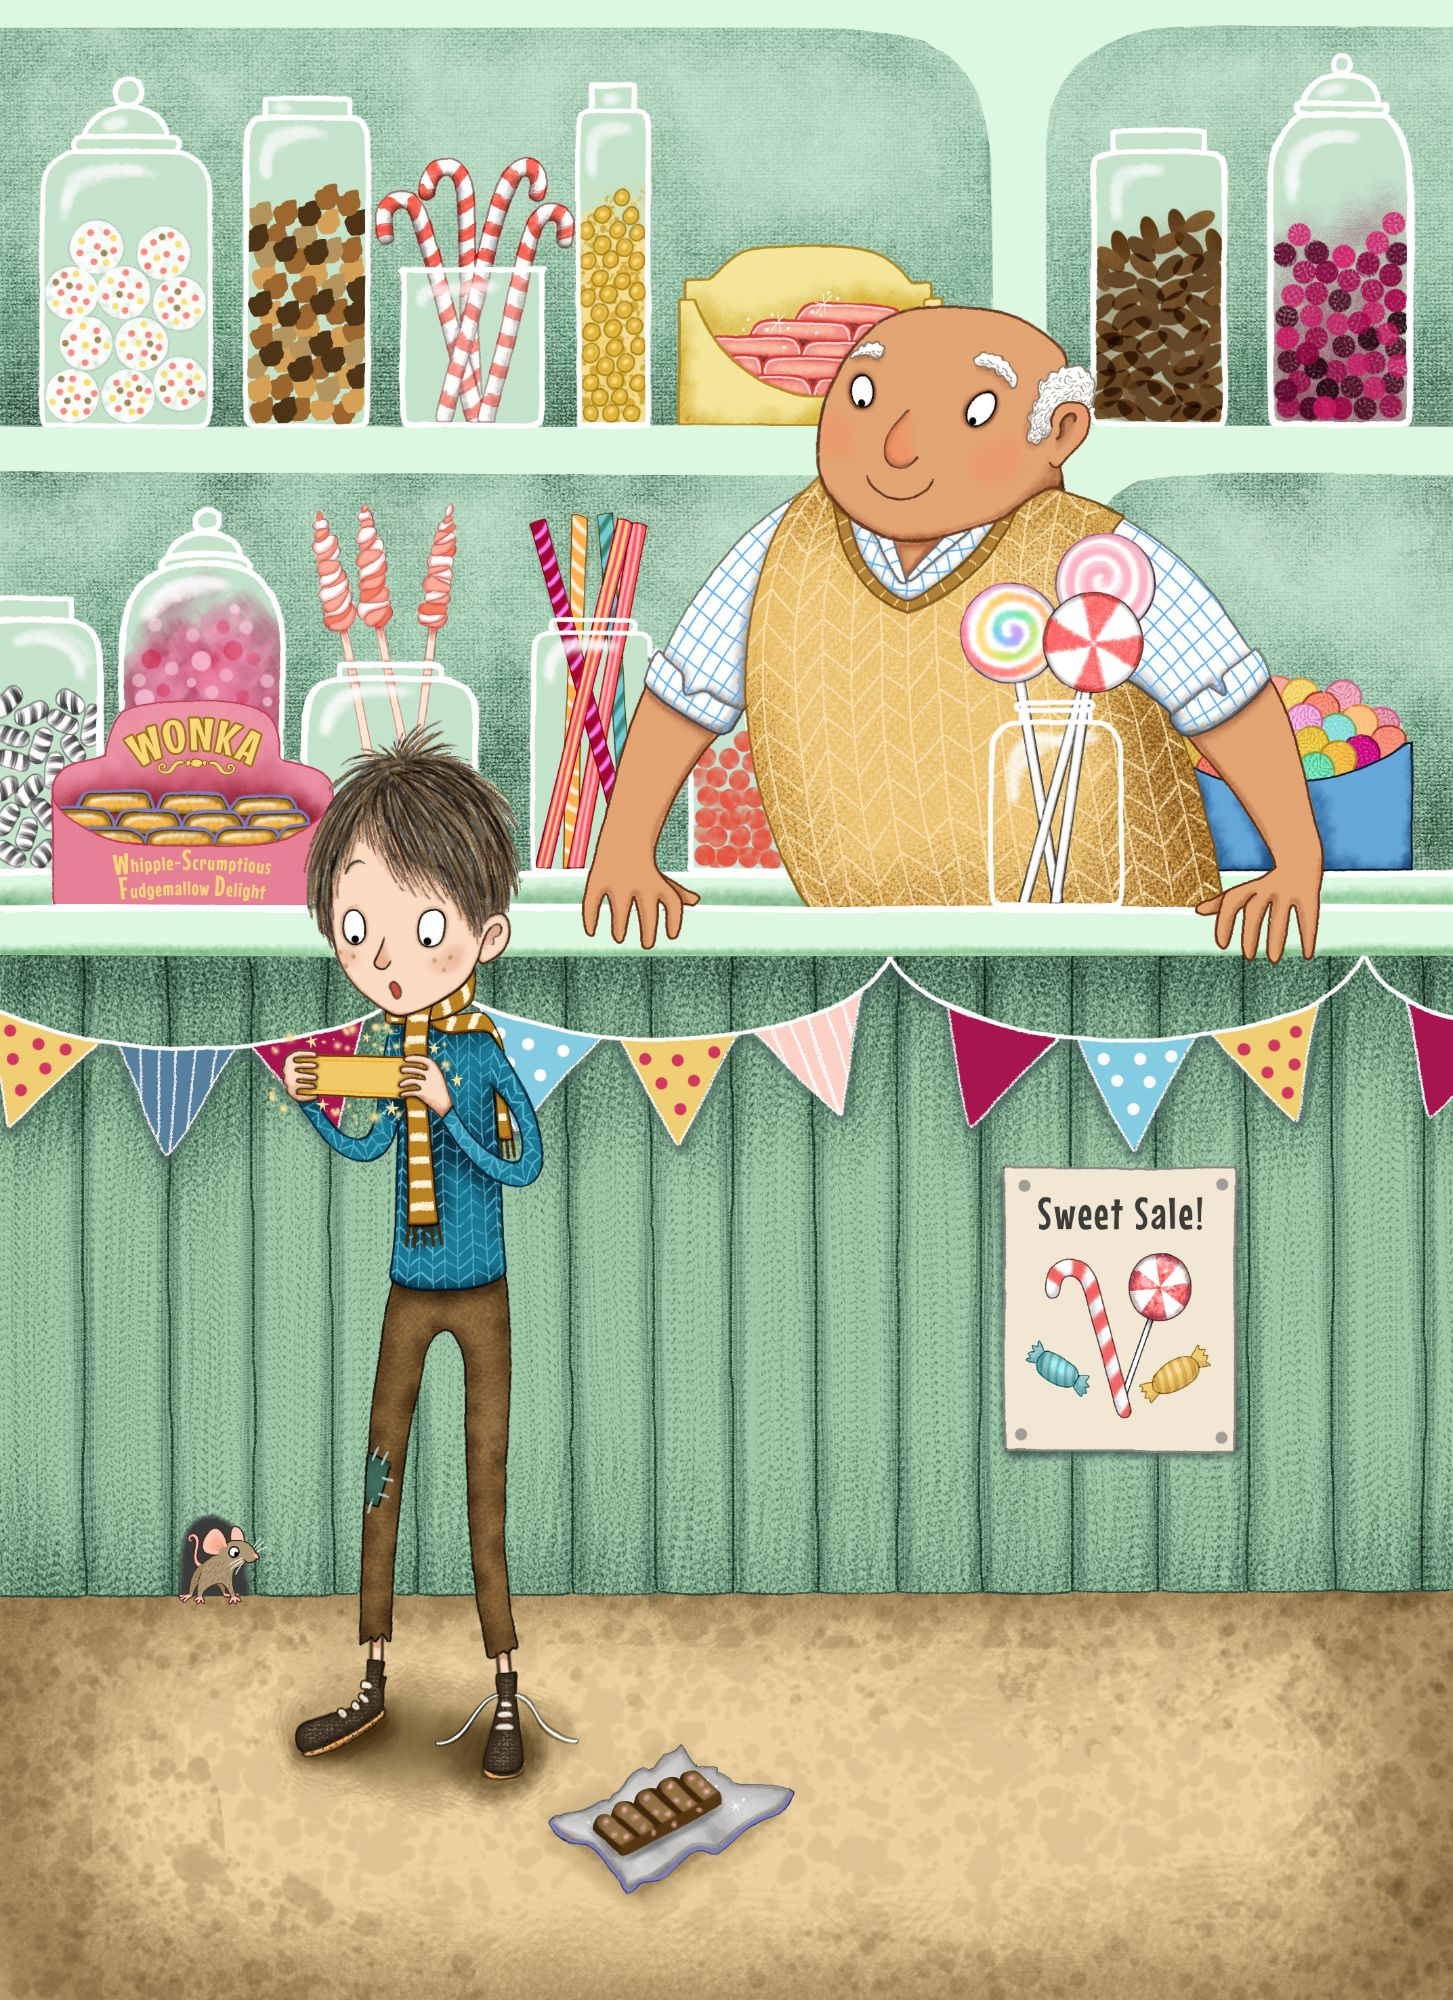 The Golden Ticket - Charlie and the Chocolate Factory - Children's Illustration by Emma Allen